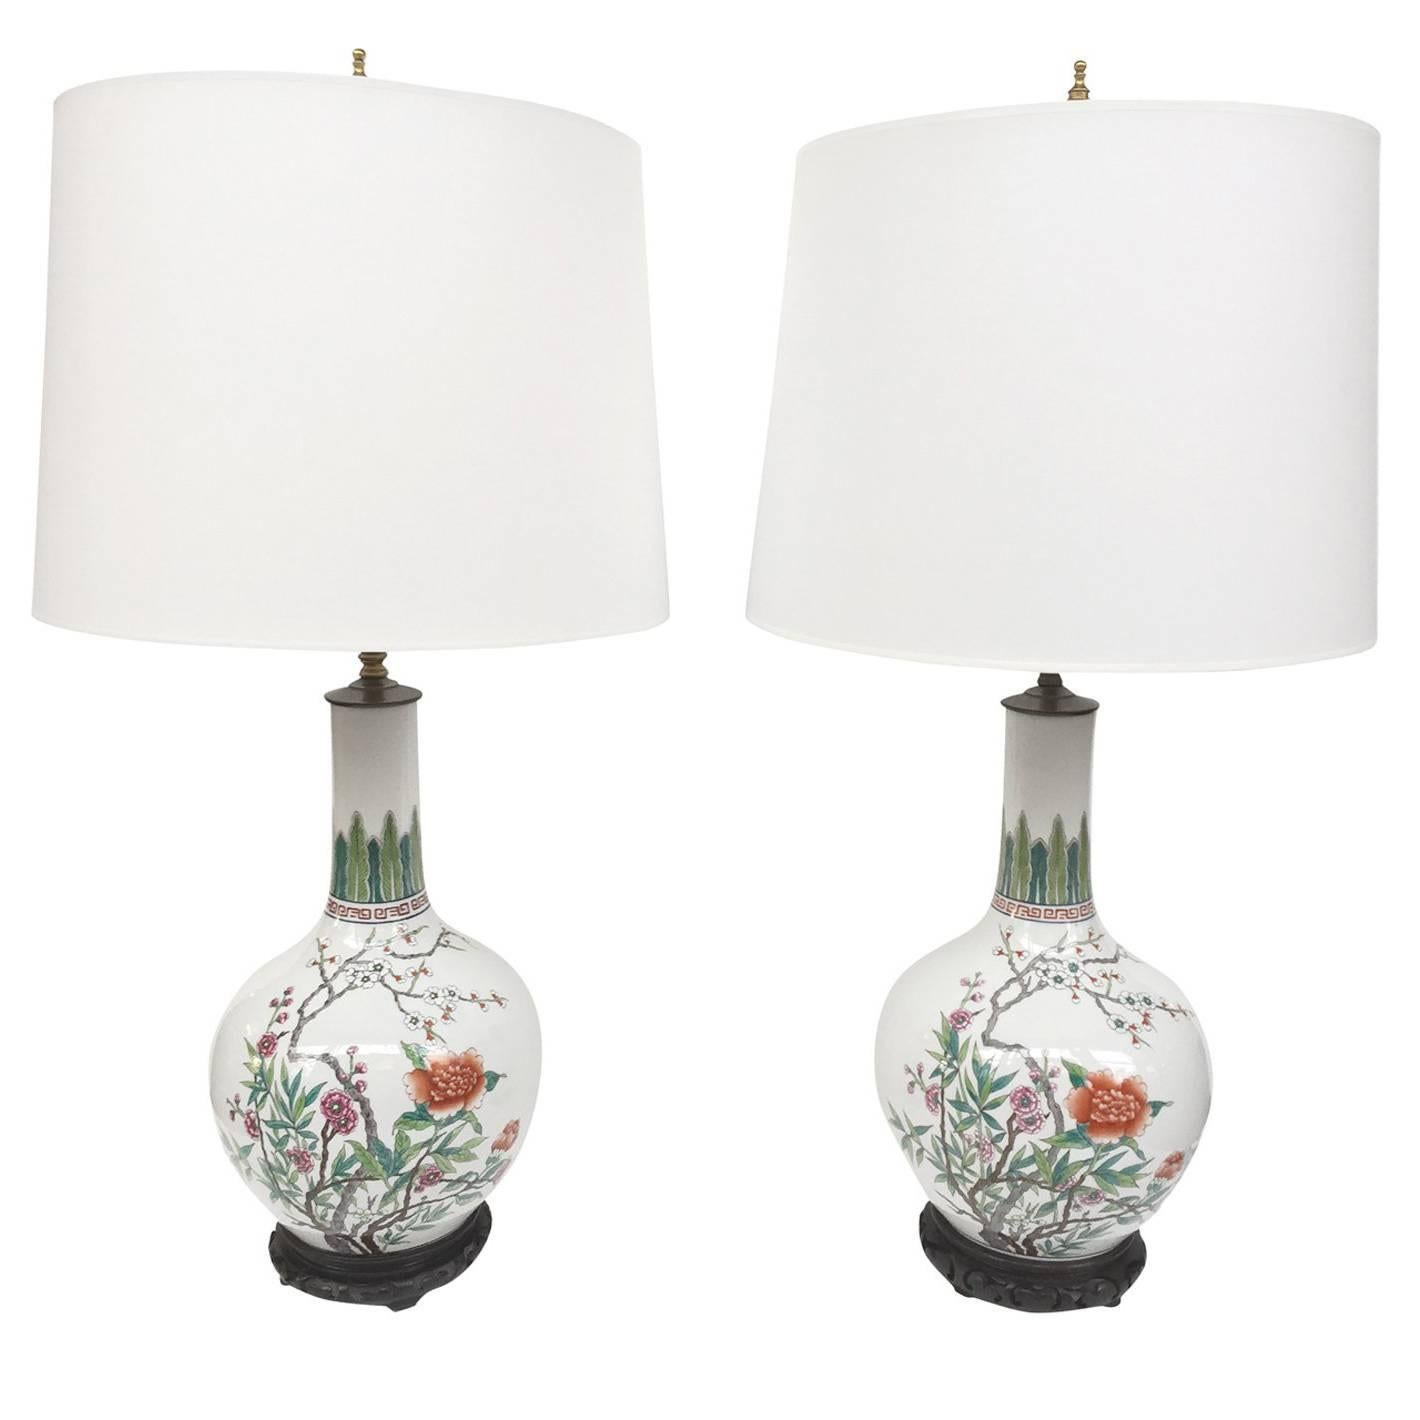 Mid 20th Century Chinese Porcelain Famille Rose Vase Converted Into Table  Lamp For Sale At 1stdibs